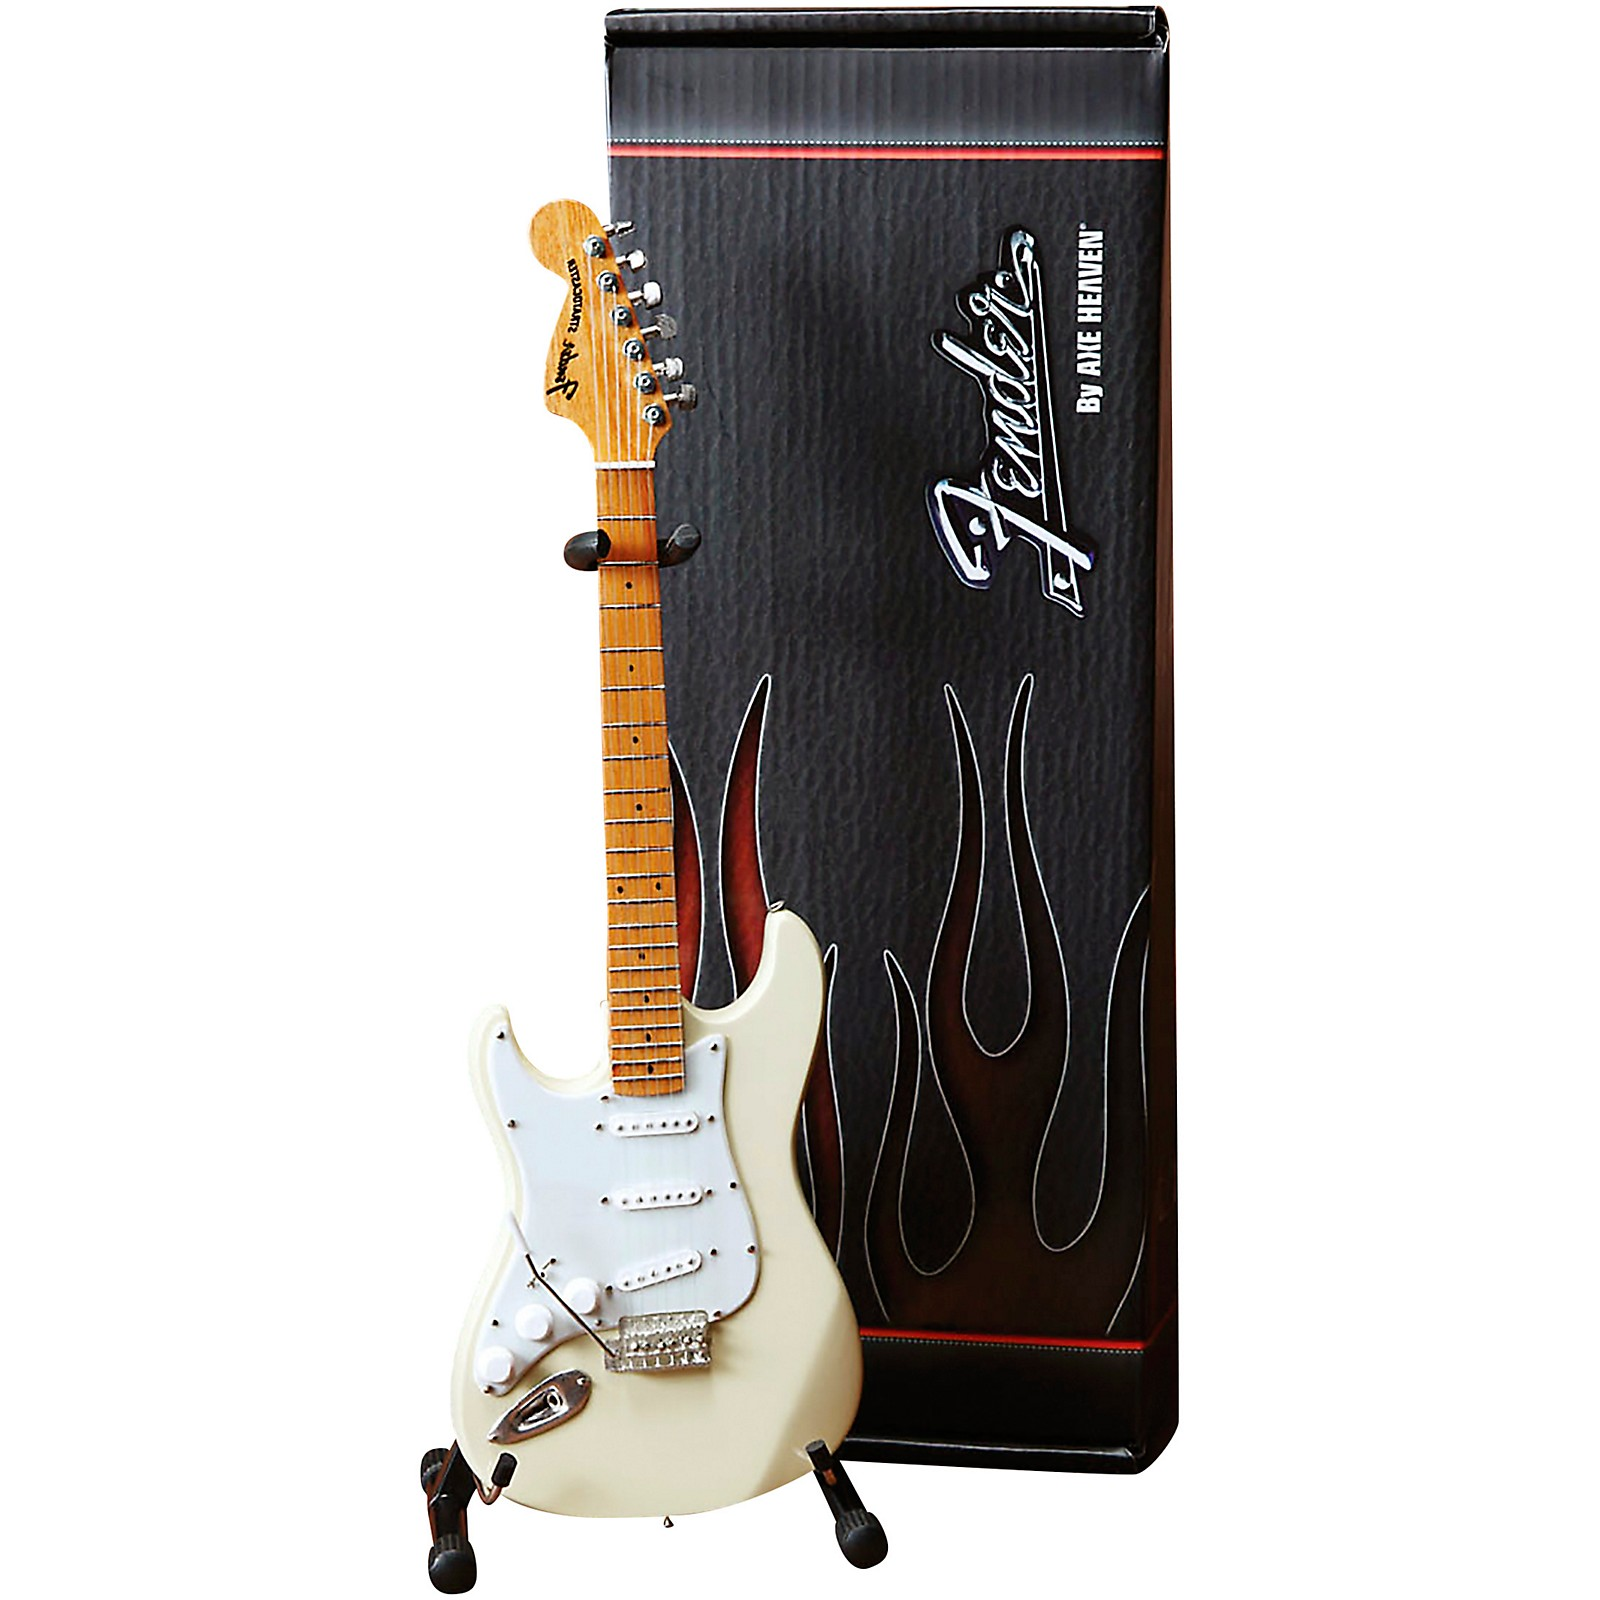 Axe Heaven Fender Stratocaster White with Reverse Headstock for Leftys Officially Licensed Mini Guitar Replica